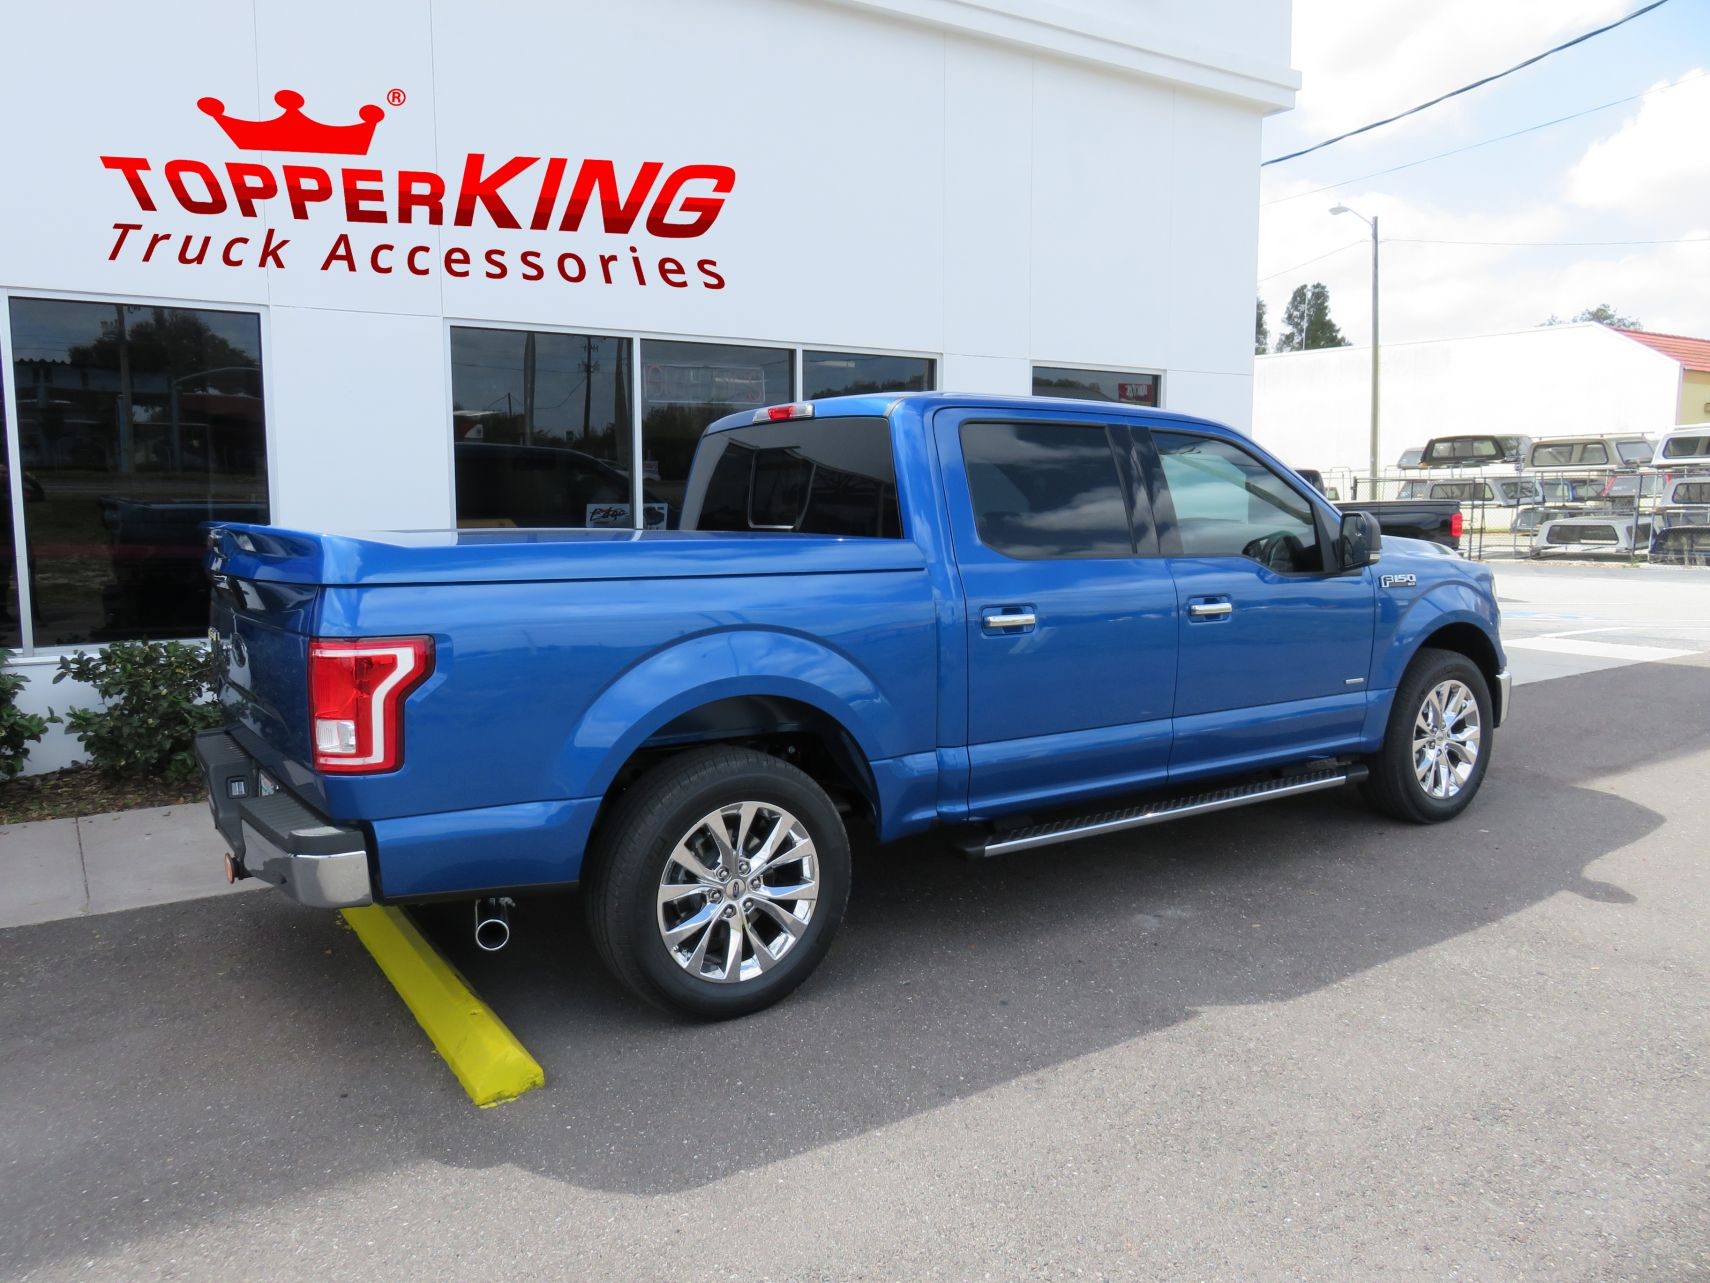 2016 Ford Leer 750 Sport Tonneau And Hitch Topperking Topperking Providing All Of Tampa Bay With Quality Truck Accessories